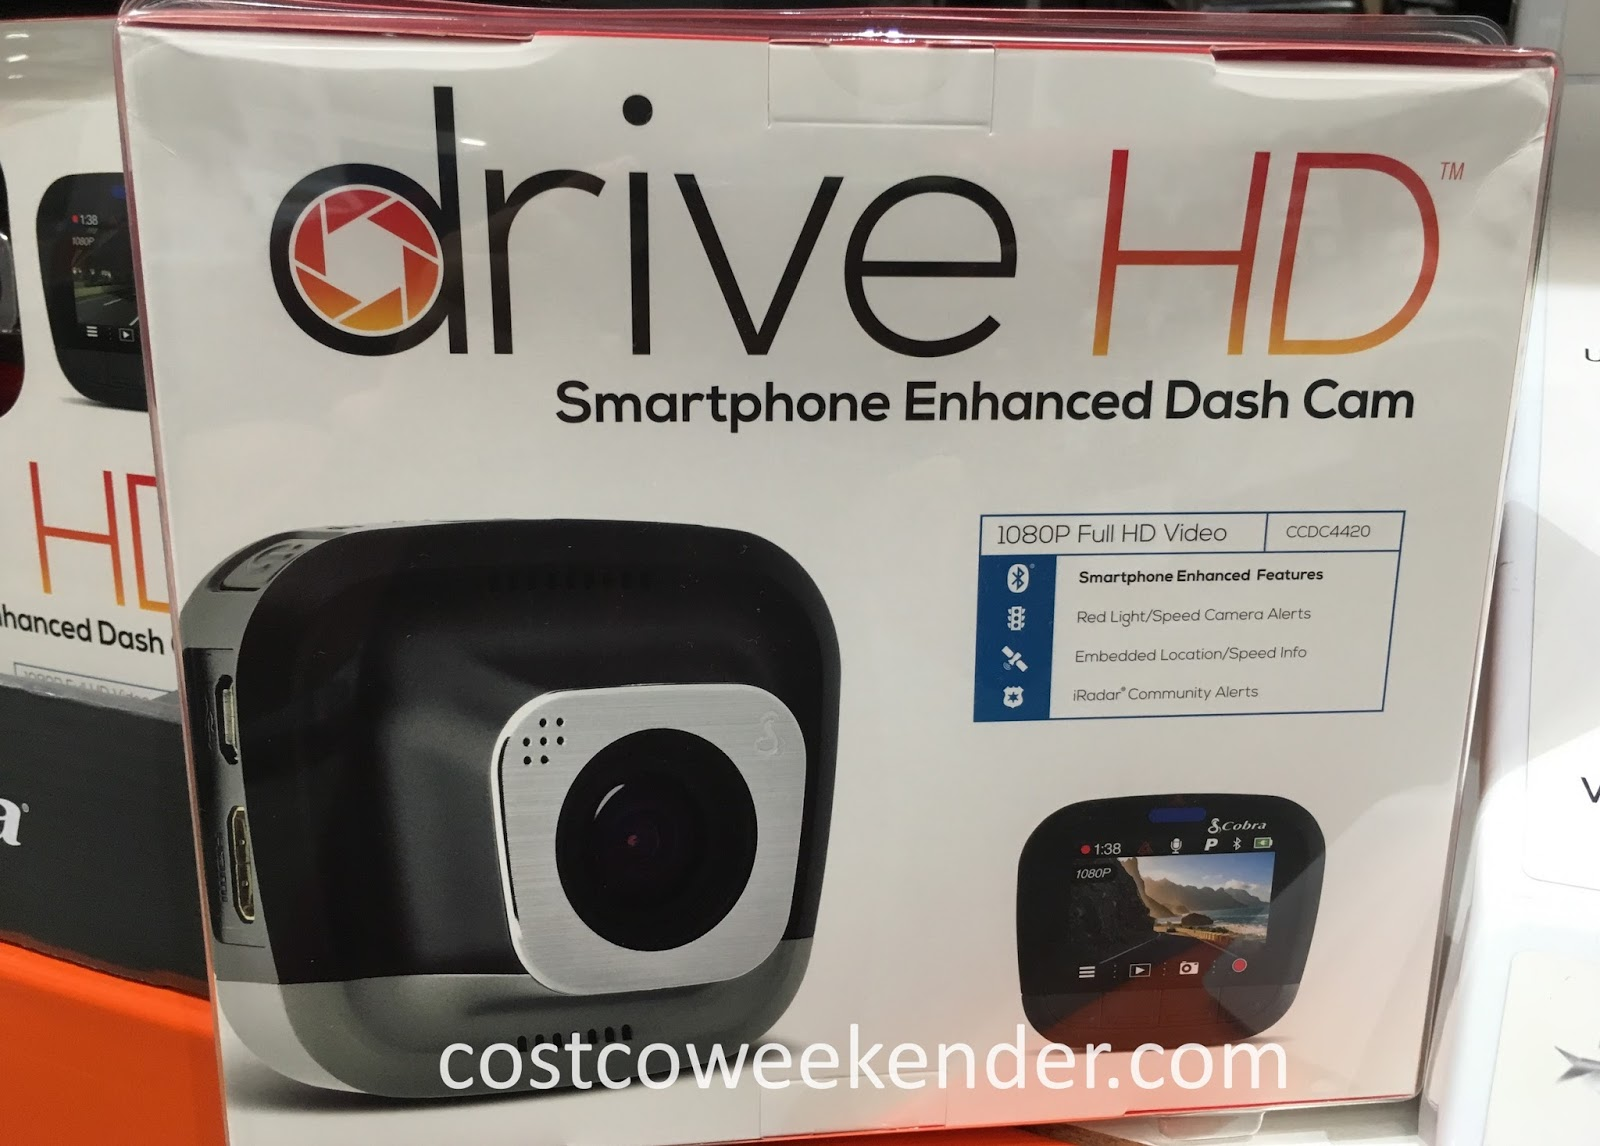 Record your next trip with the Cobra Drive HD Smartphone Enhanced Dash Cam